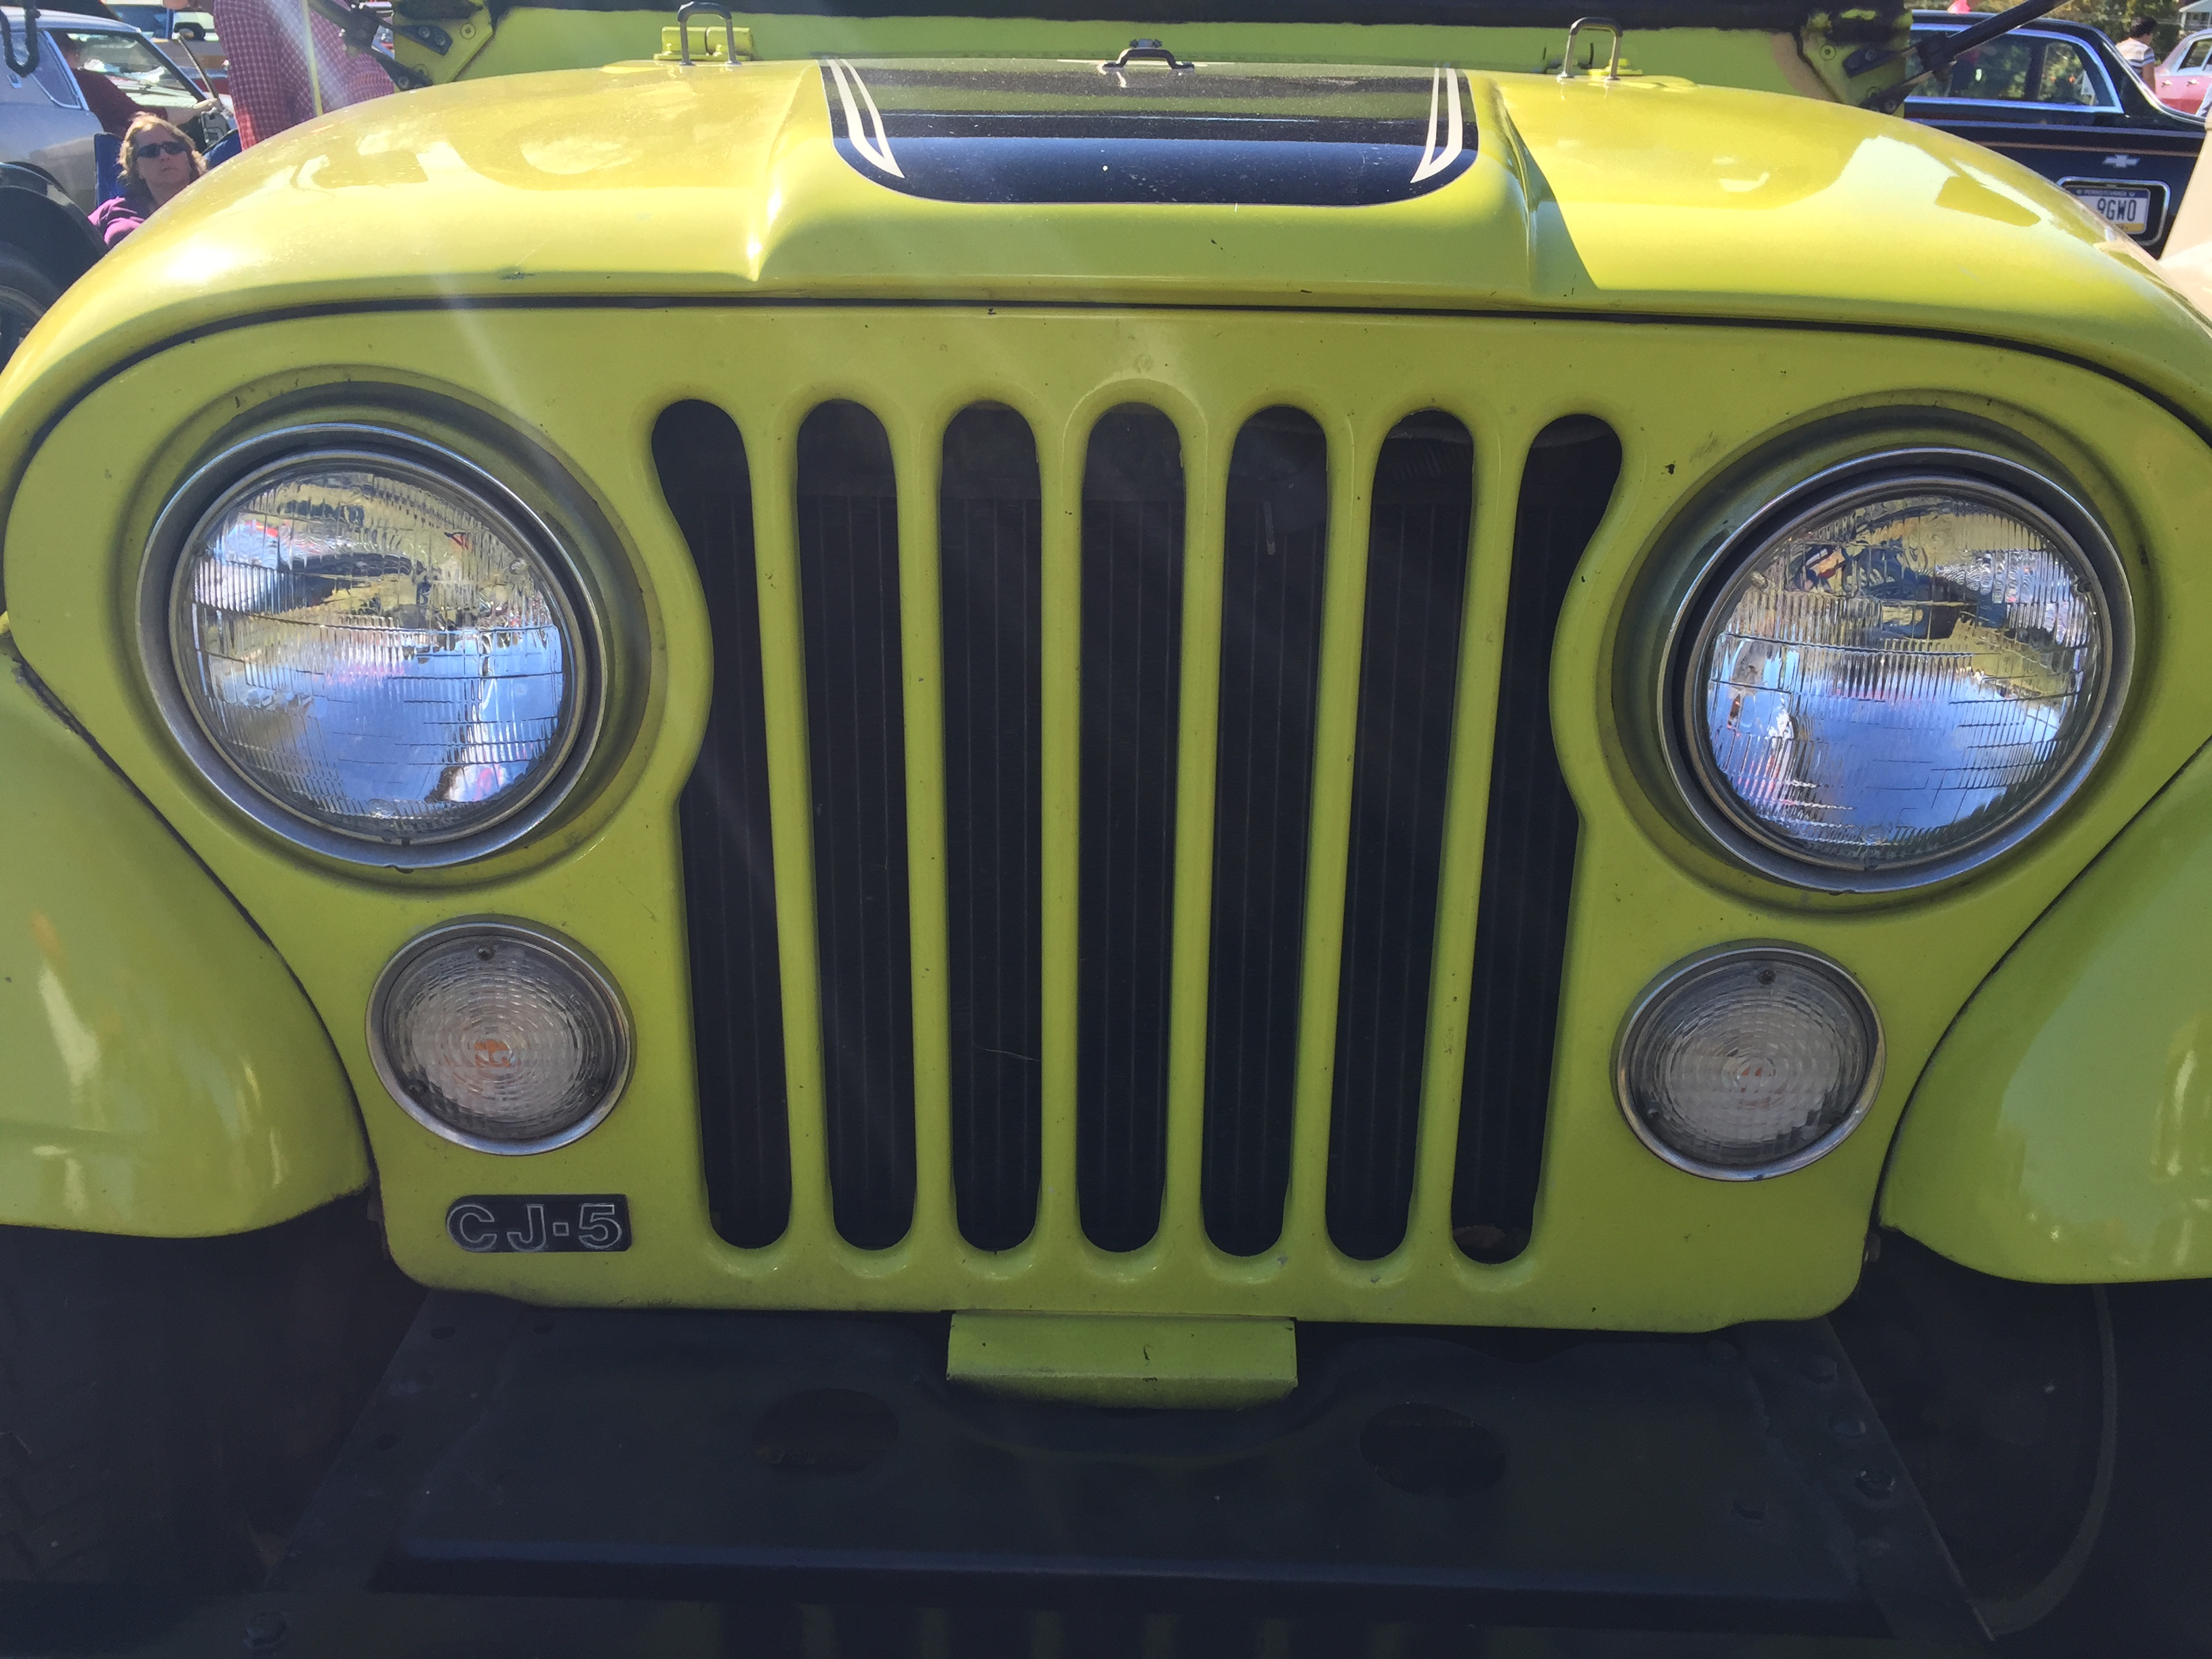 File 1974 Jeep Cj 5 Renegade V8 In Yellow All Original At 2015 Aaca Eastern Regional Fall Meet 4of7 Jpg Wikimedia Commons